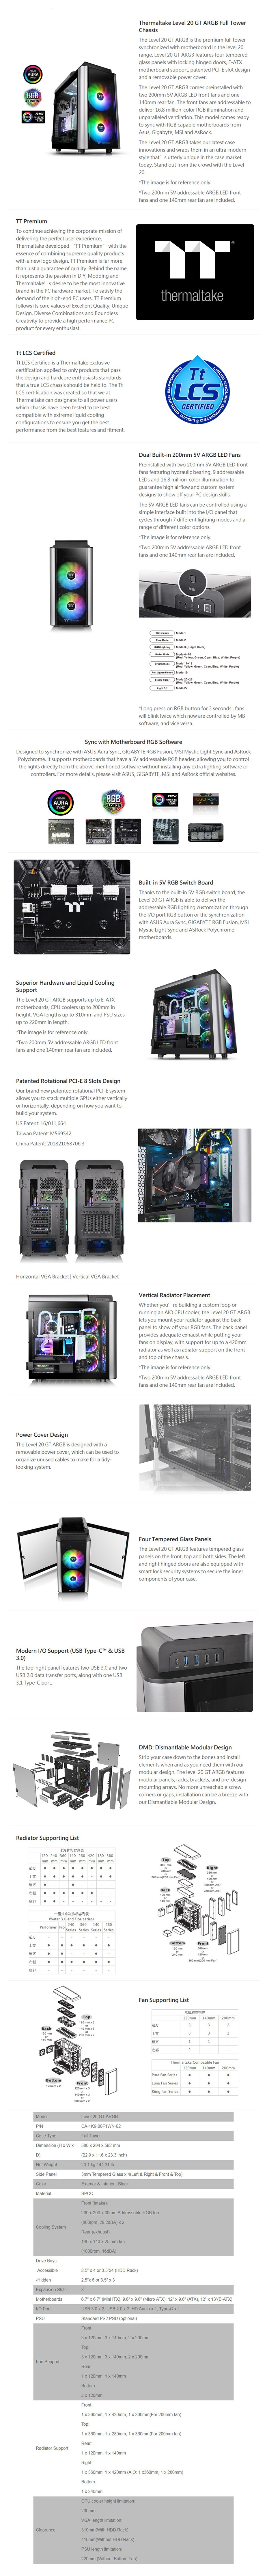 Thermaltake Level 20 GT ARGB Tempered Glass Full Tower E-ATX Case - Desktop Overview 1